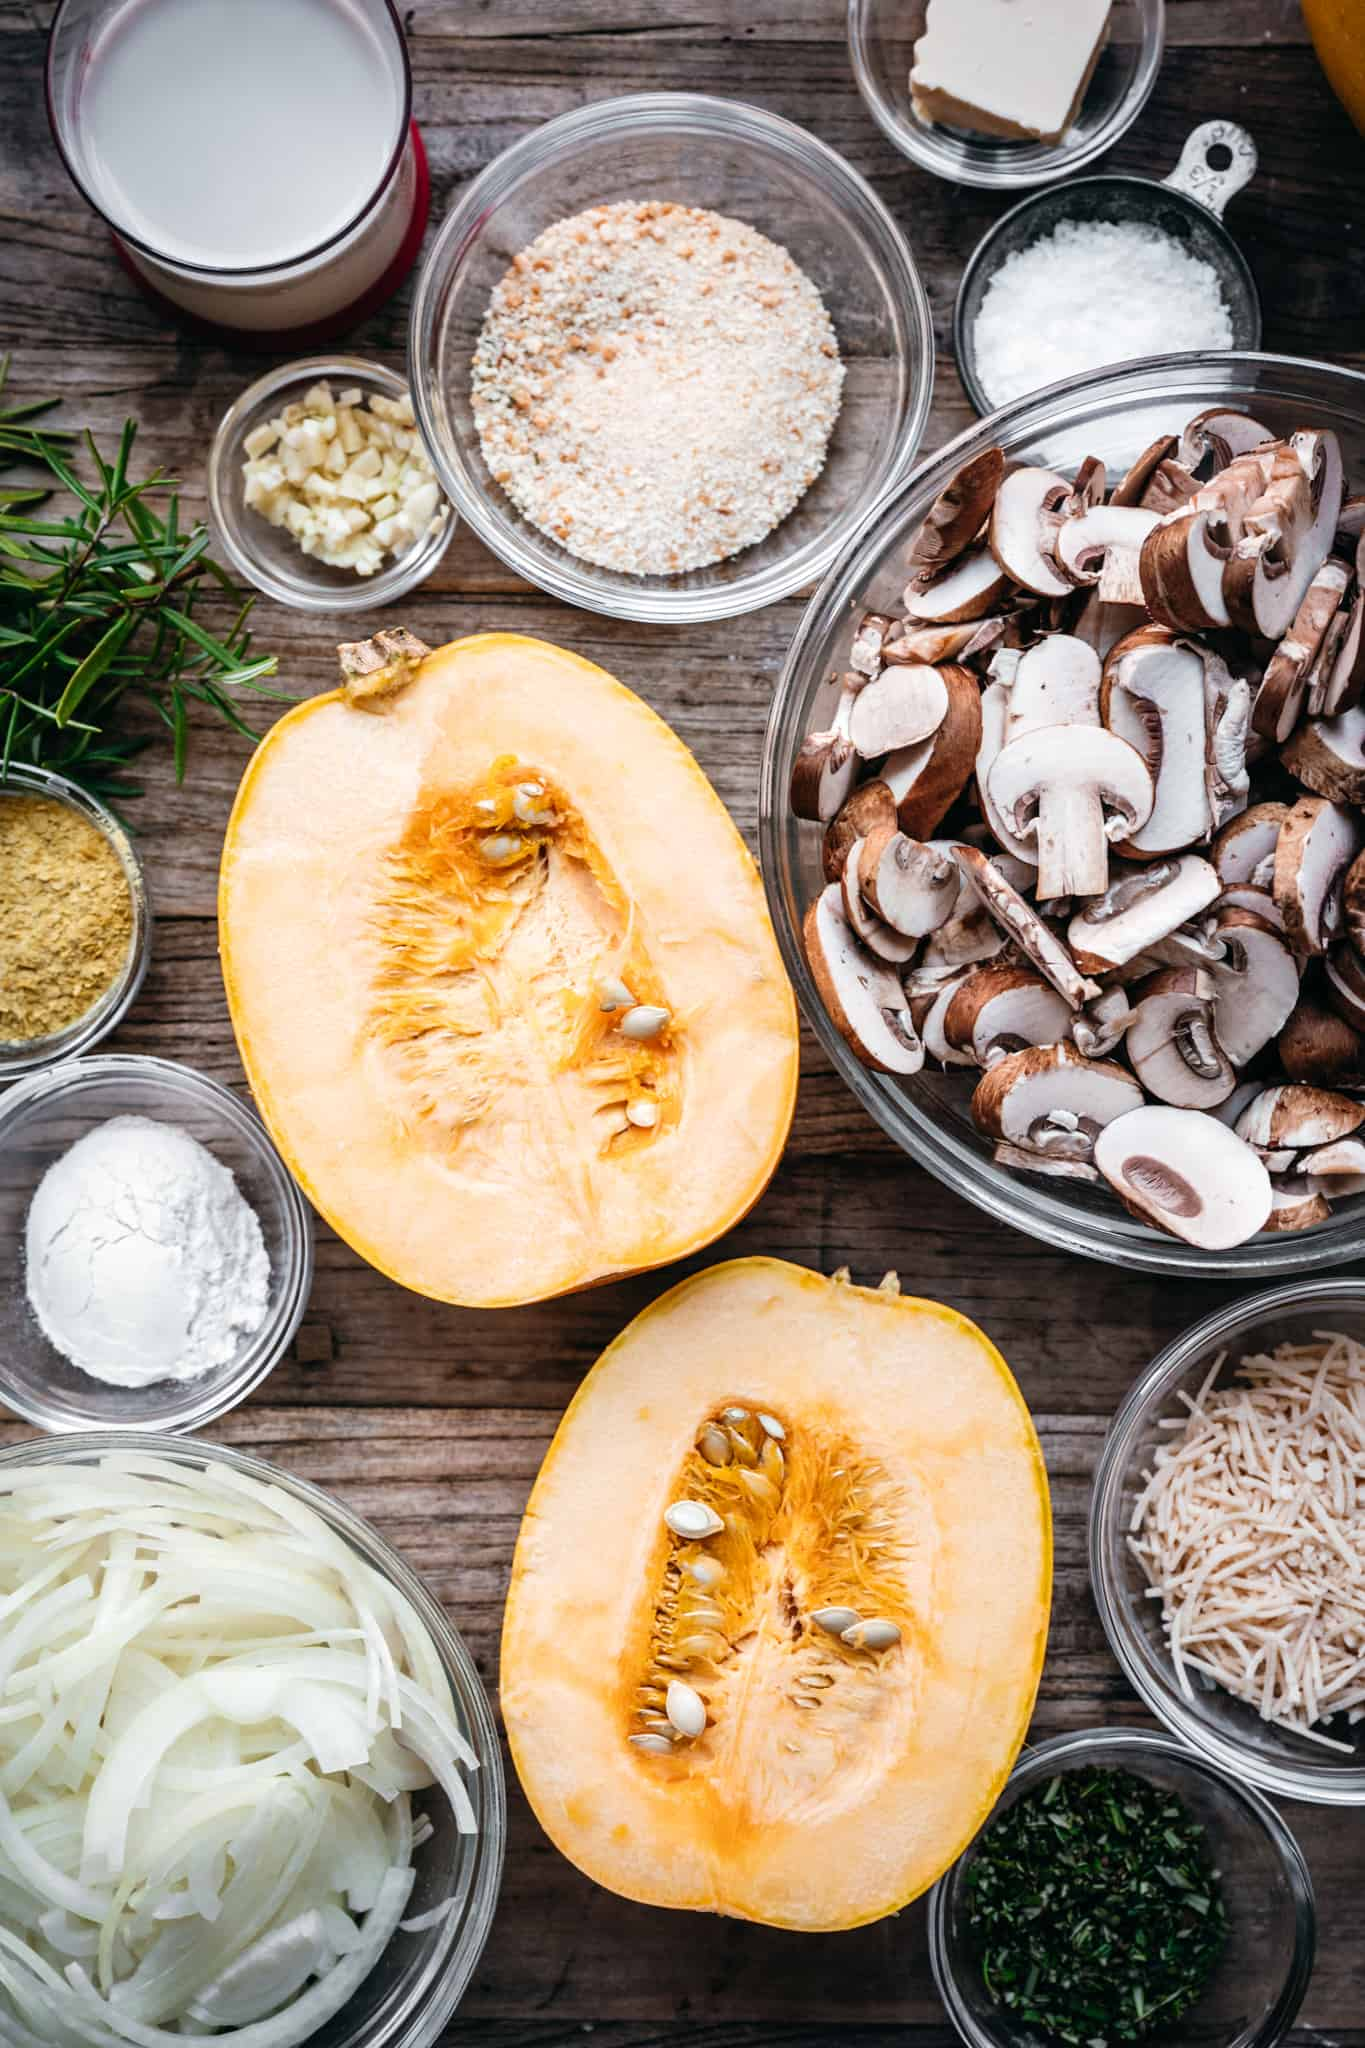 overhead of a spaghetti sqasuh, mixed mushrooms, and other ingredients for vegan casserole in small bowls on a wooden background